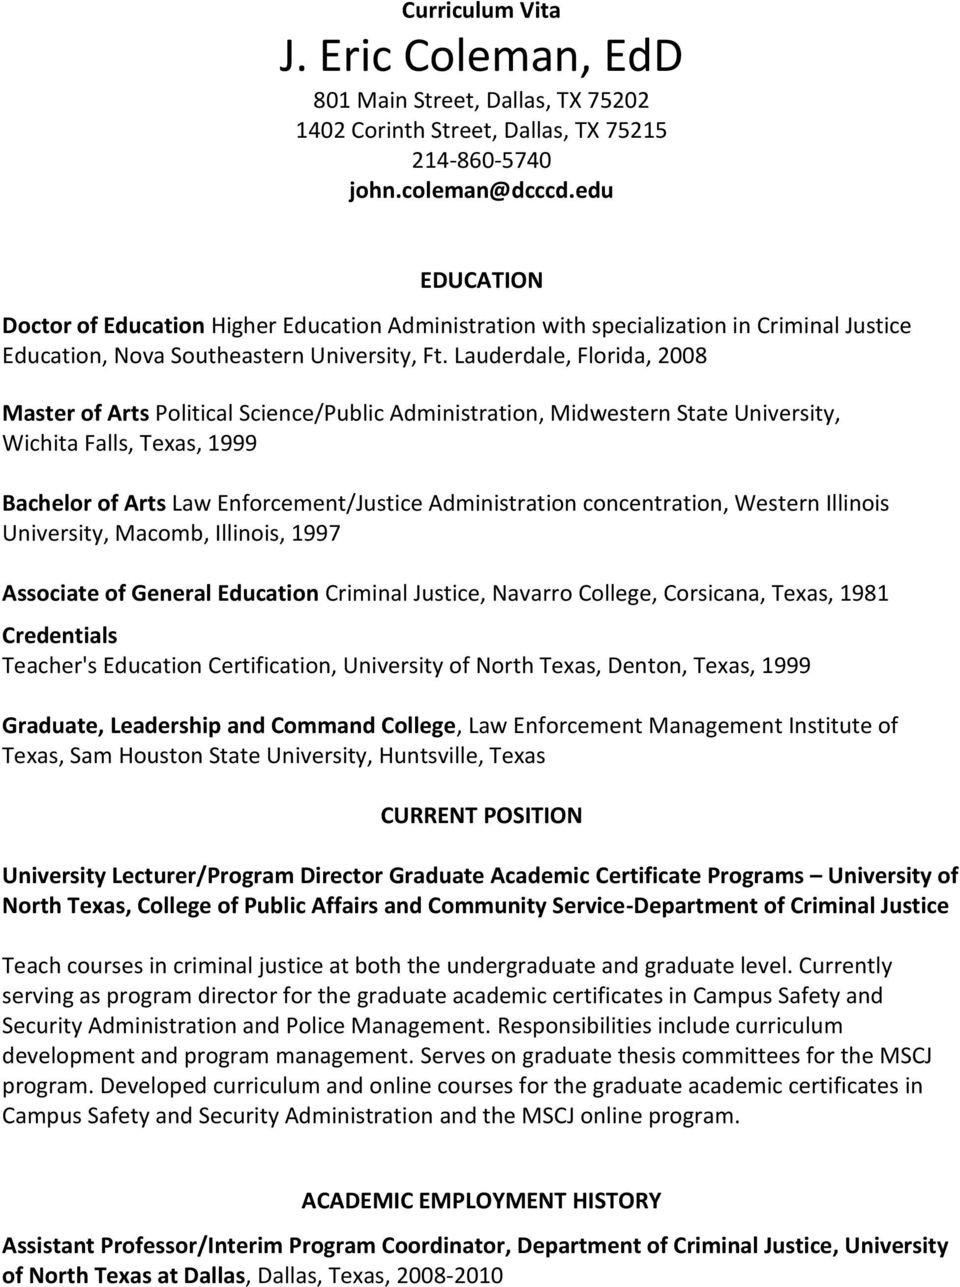 Lauderdale, Florida, 2008 Master of Arts Political Science/Public Administration, Midwestern State University, Wichita Falls, Texas, 1999 Bachelor of Arts Law Enforcement/Justice Administration